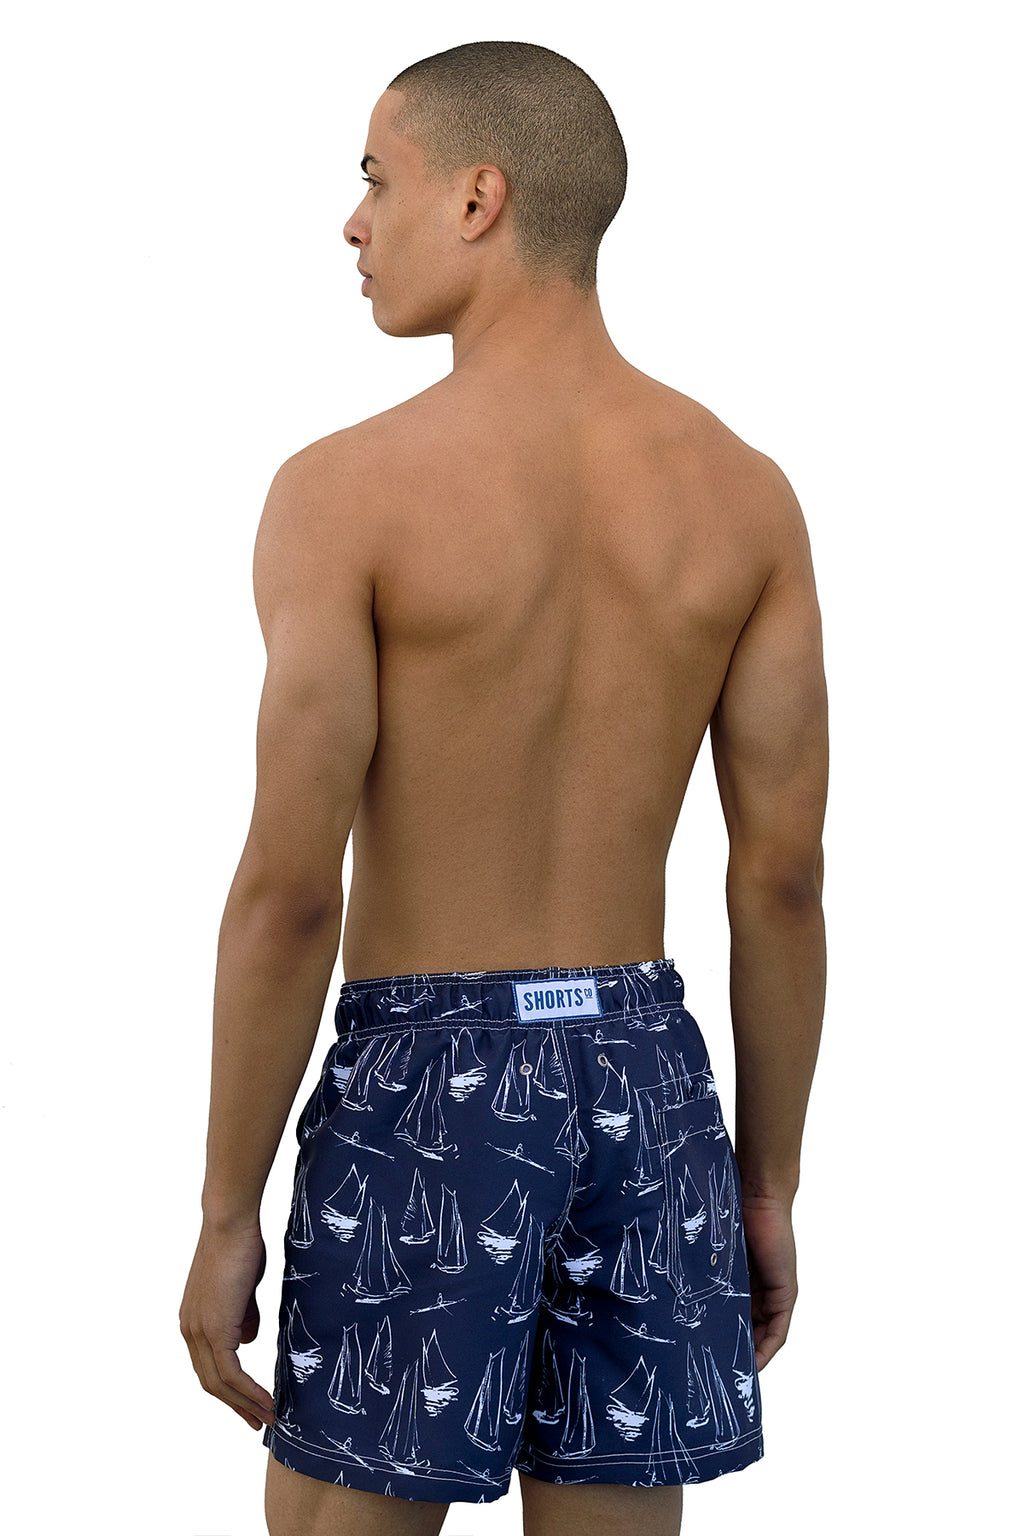 Printed Shorts, Barcos